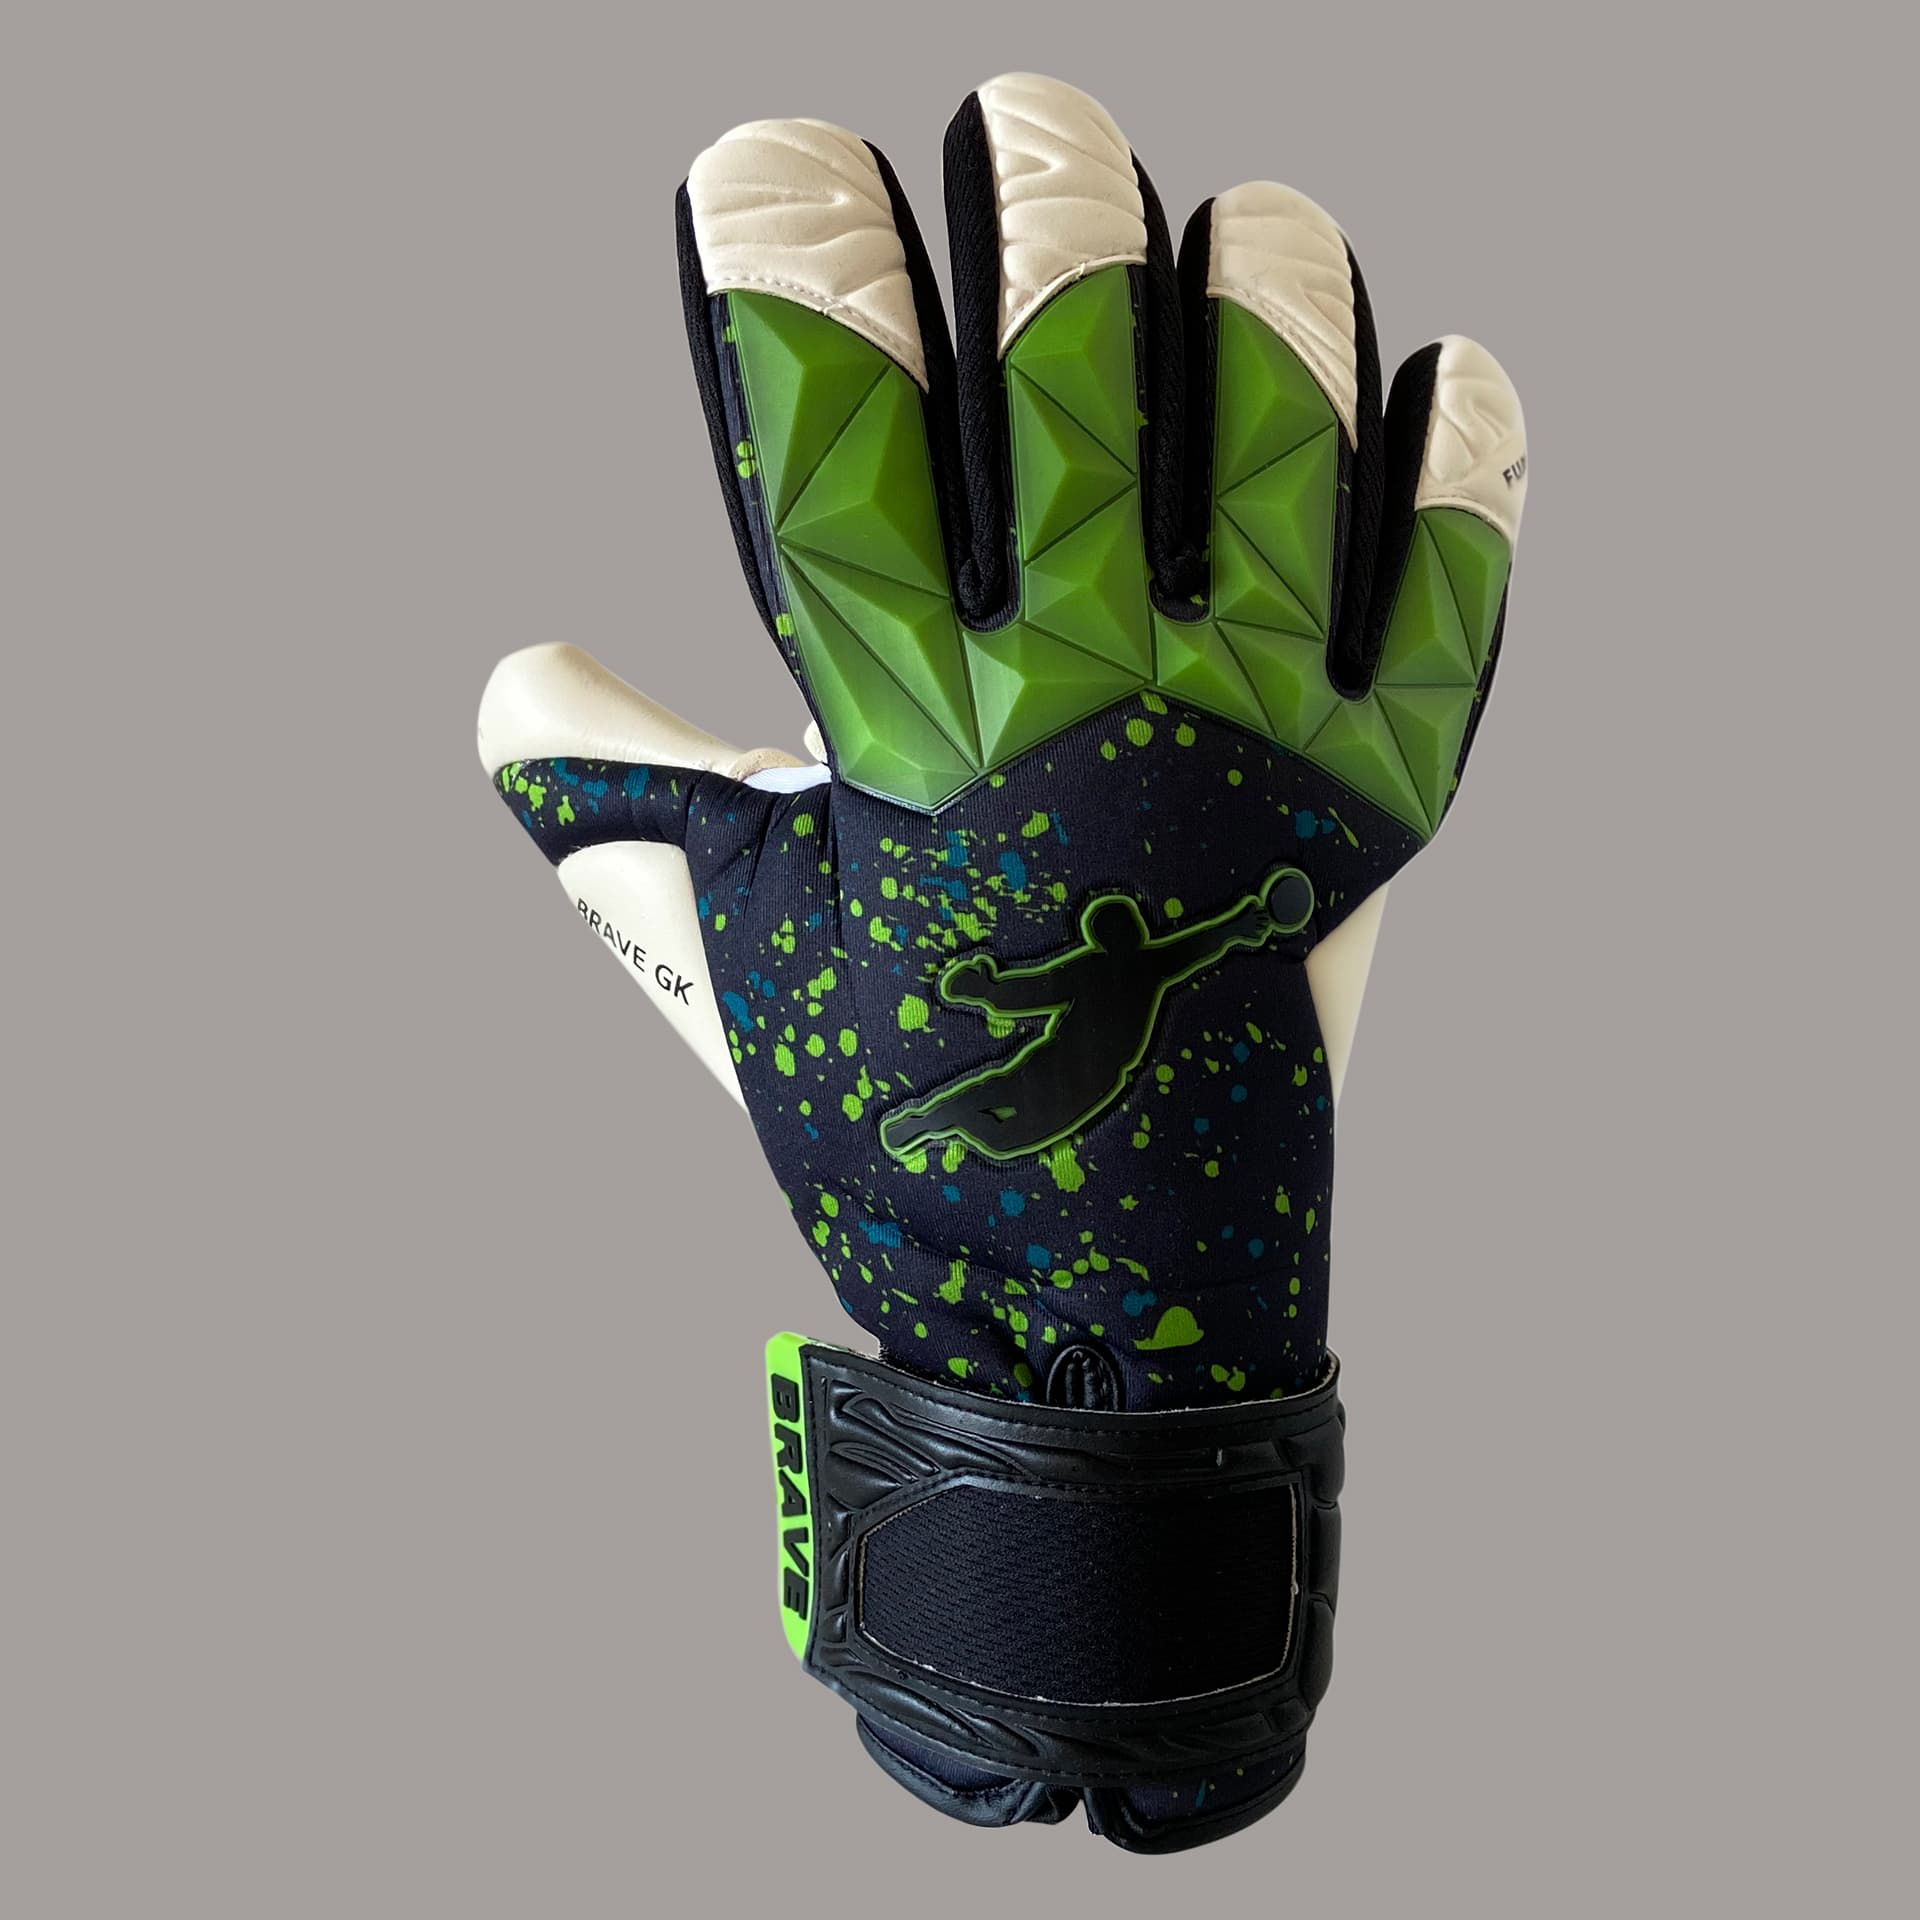 Brave GK Fury Green Paint Drops -3-Brave GK